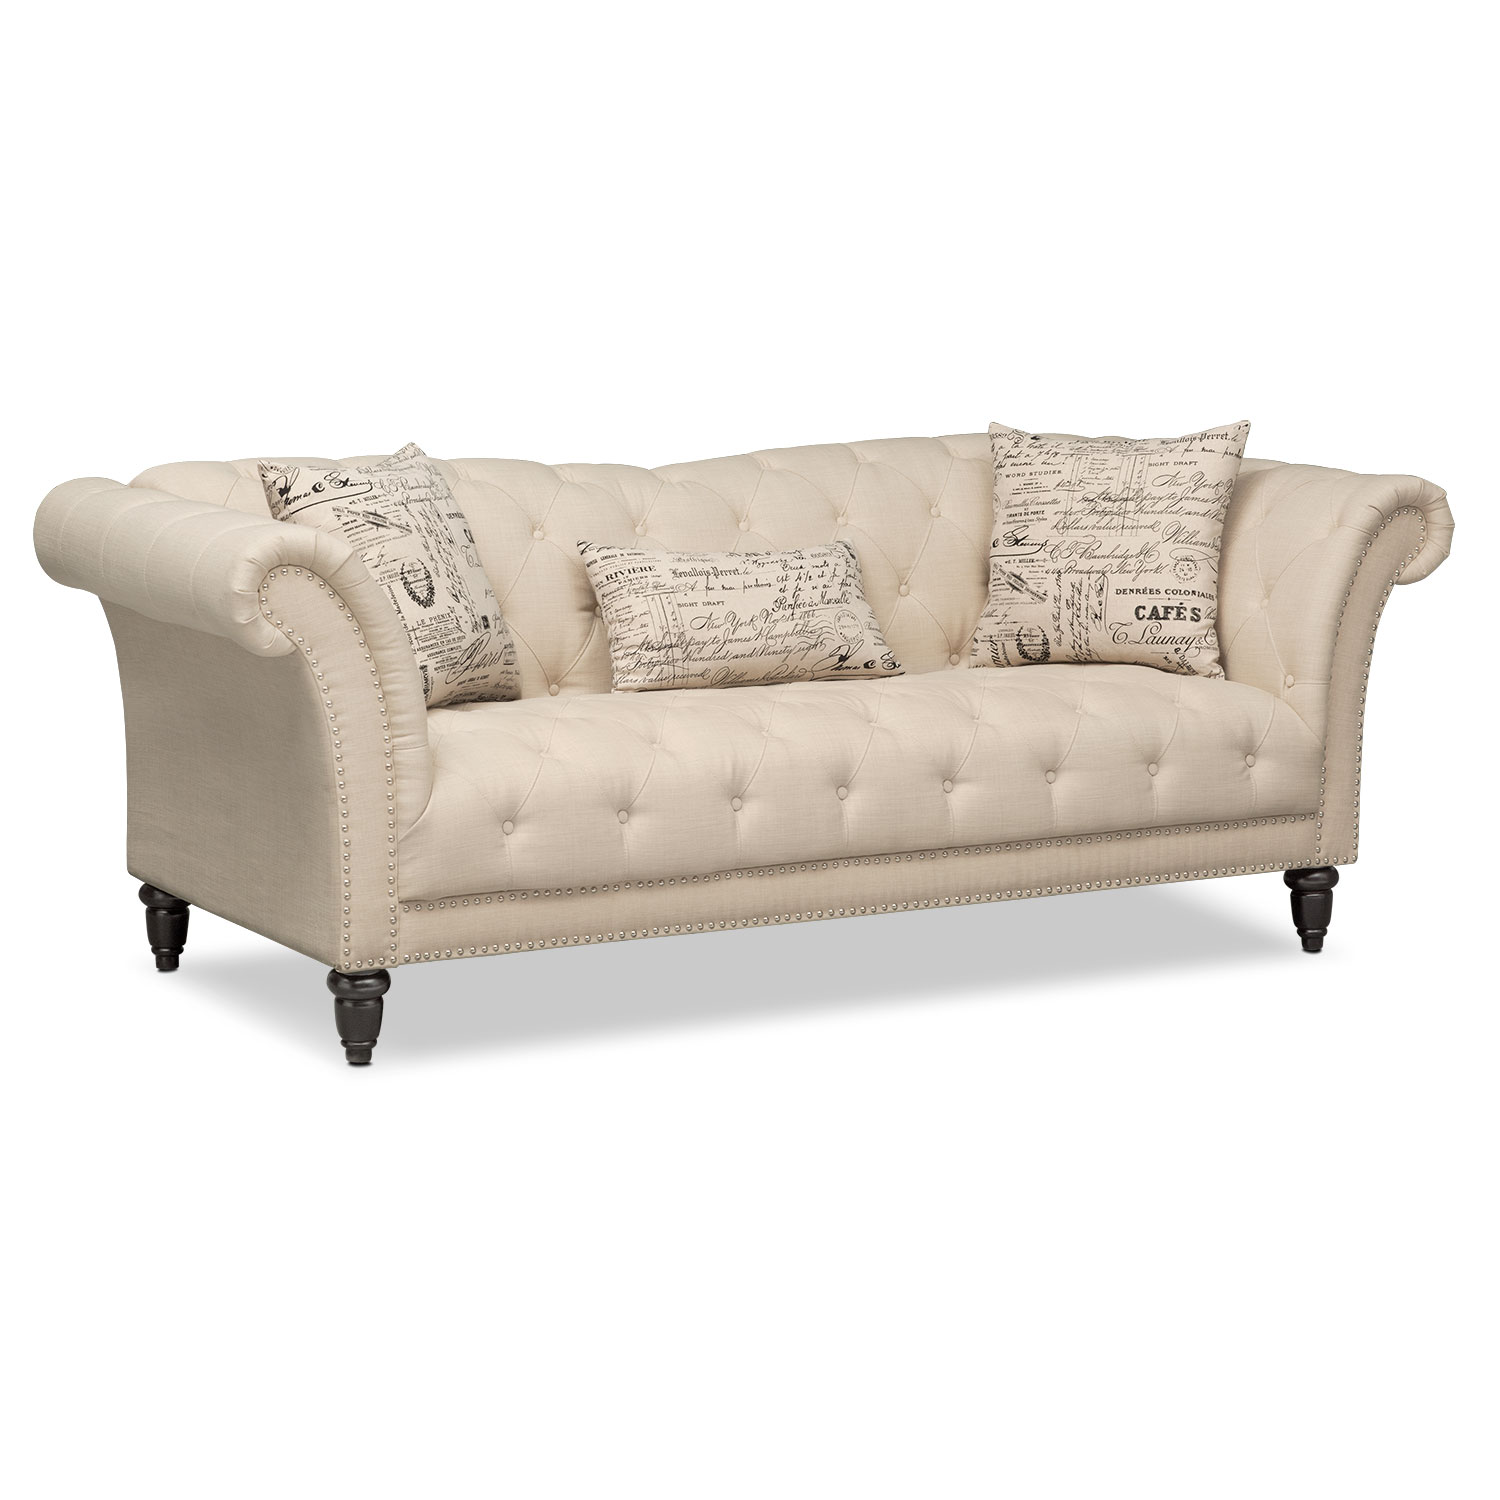 Marisol sofa beige american signature furniture Sofa loveseat